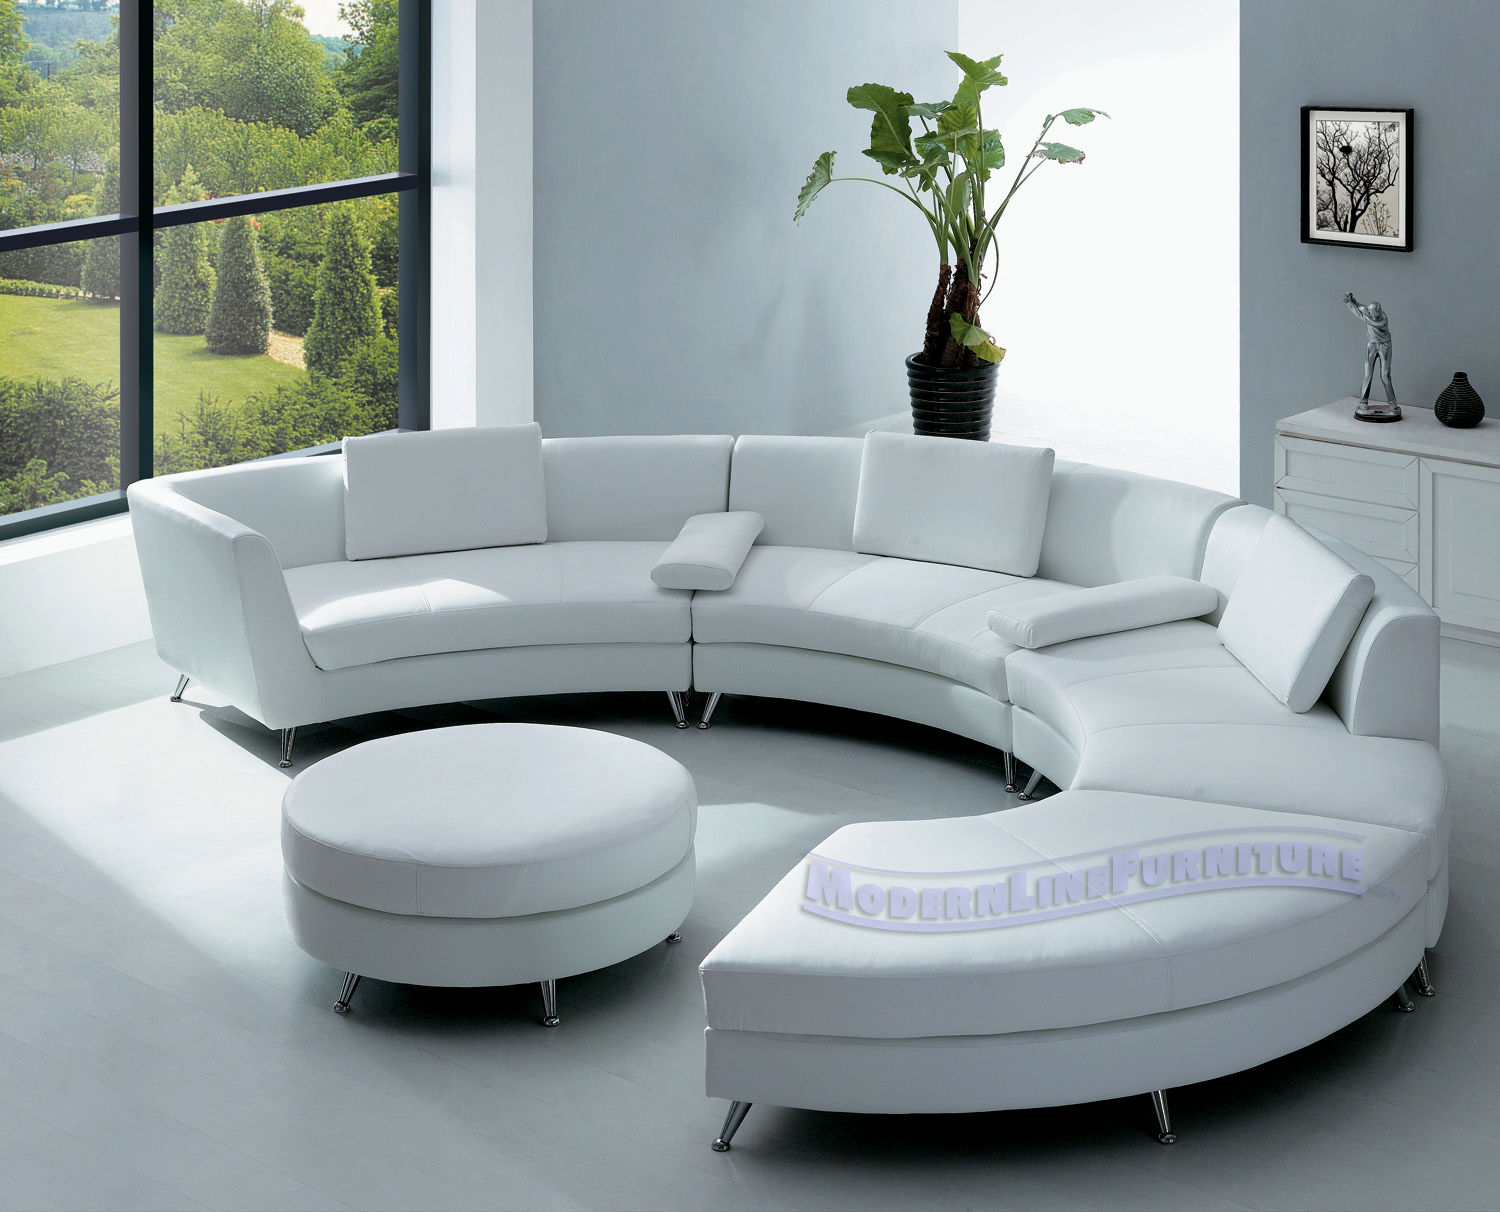 superb sectional sofa with chaise architecture-Superb Sectional sofa with Chaise Design